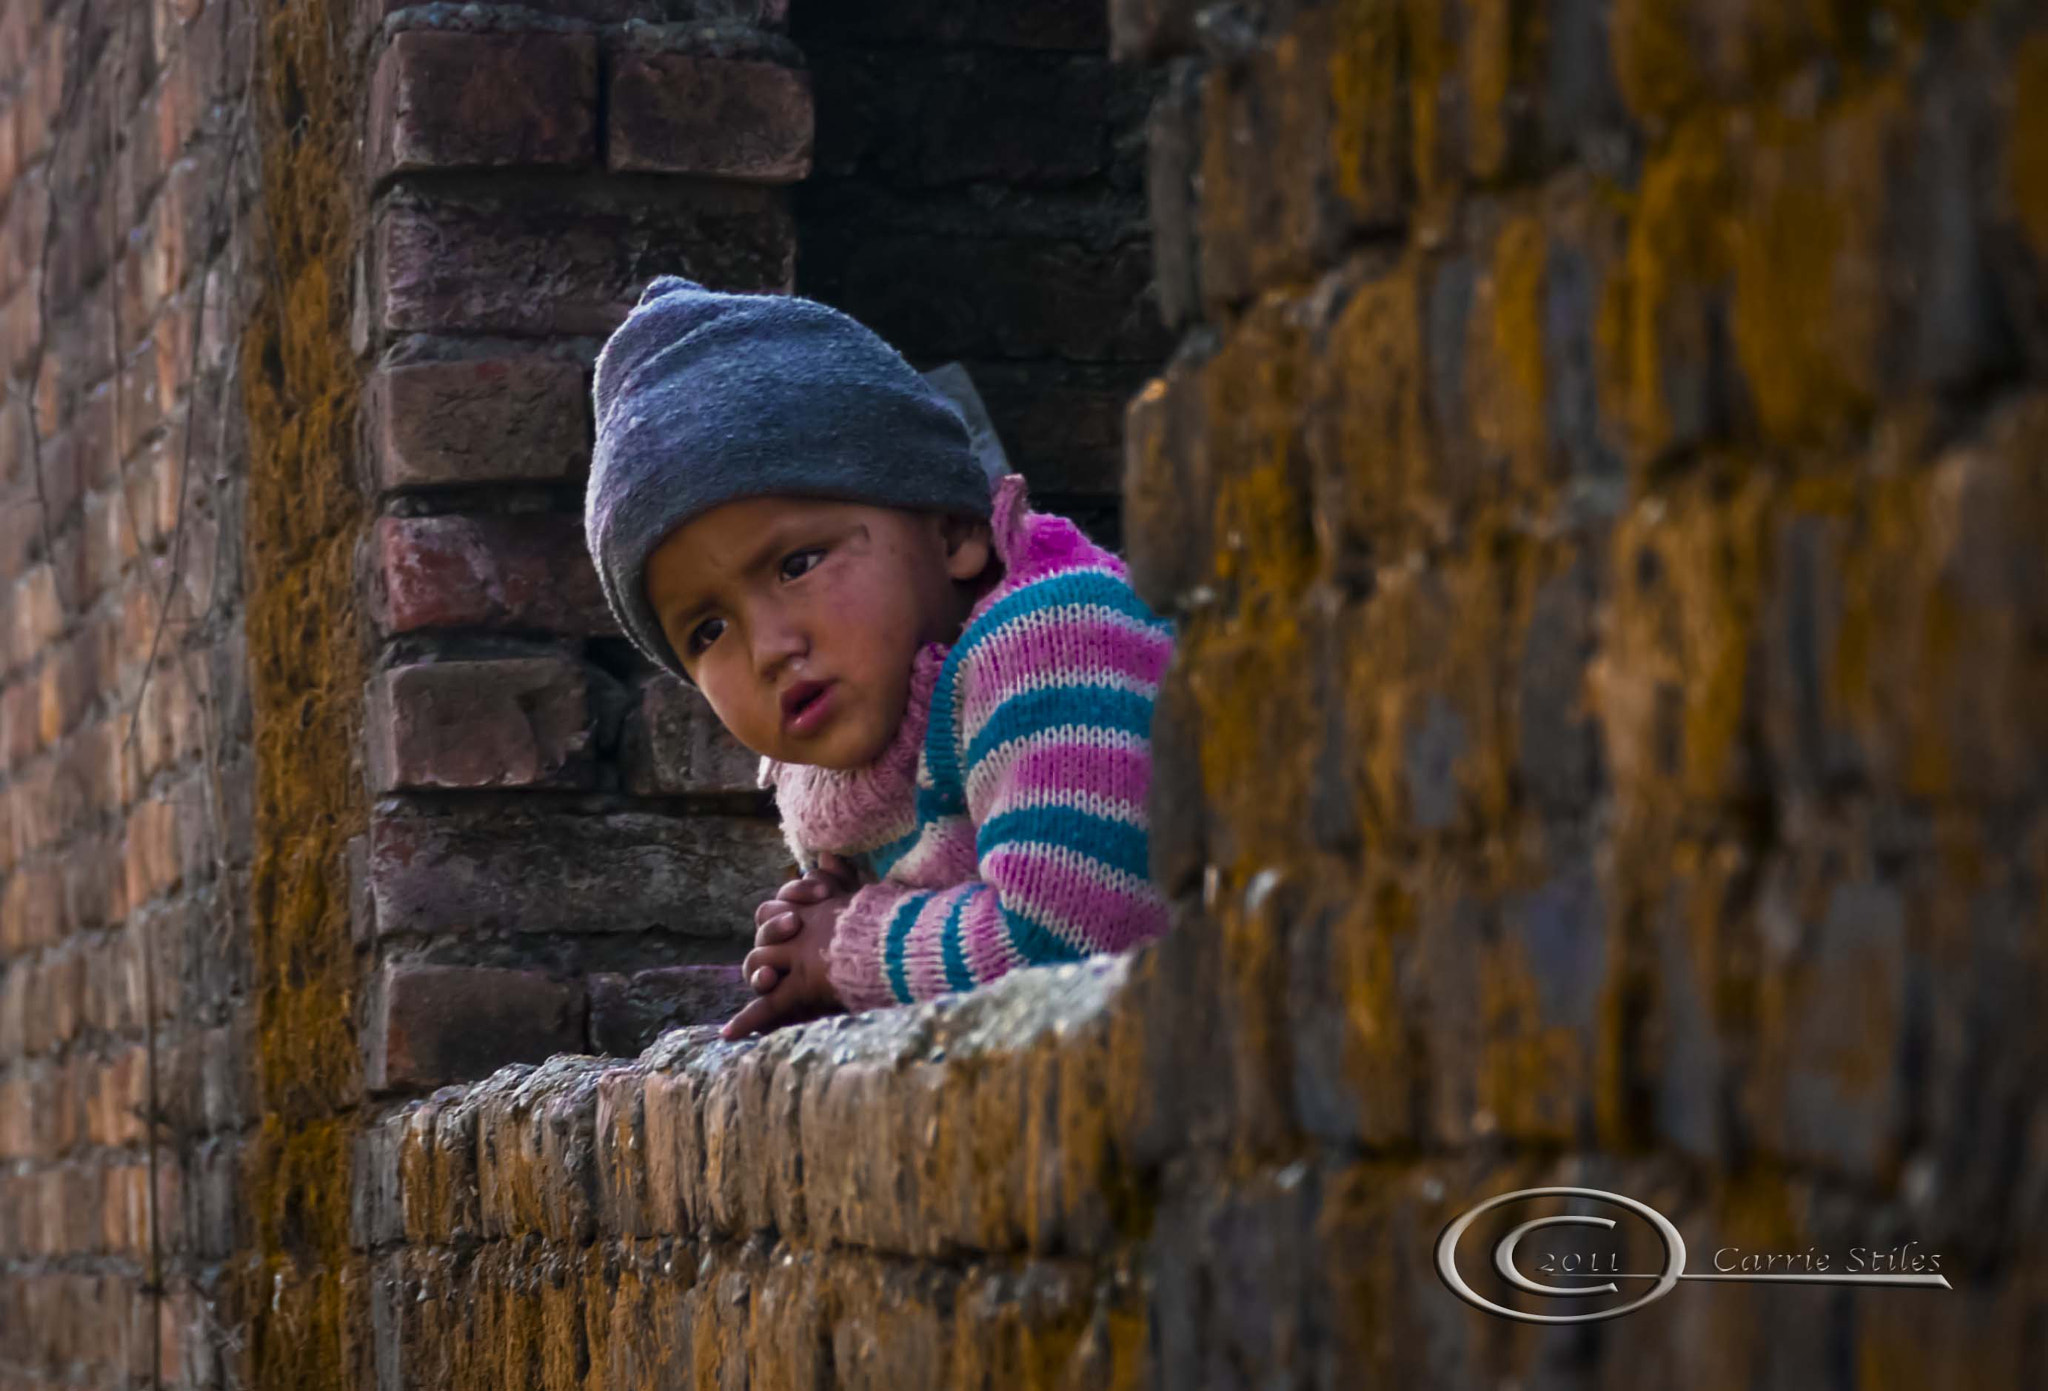 Photograph North India by Carrie Stiles on 500px